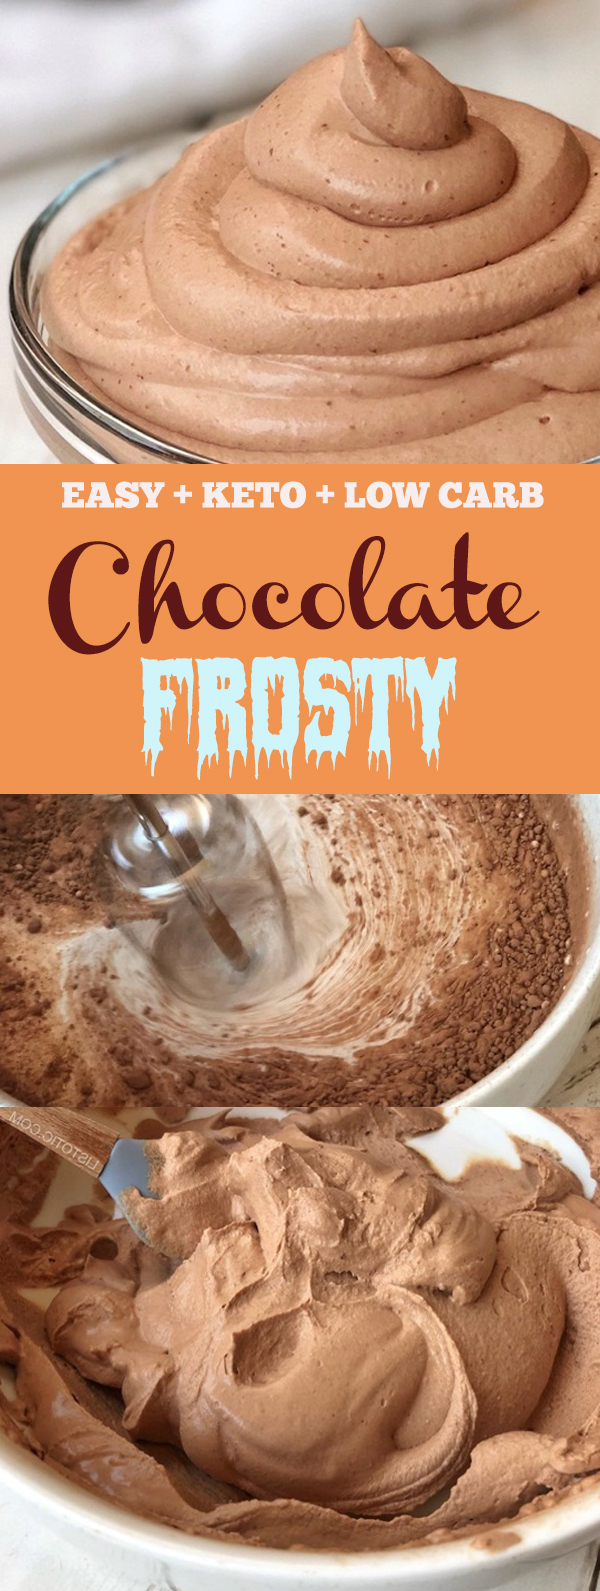 Easy Keto Chocolate Frosty - Keto & Low Carb #ketochocolate #chocolate #icecream #lowcarb #easychocolate #ketodessert #lowcarbdessert #easydessert